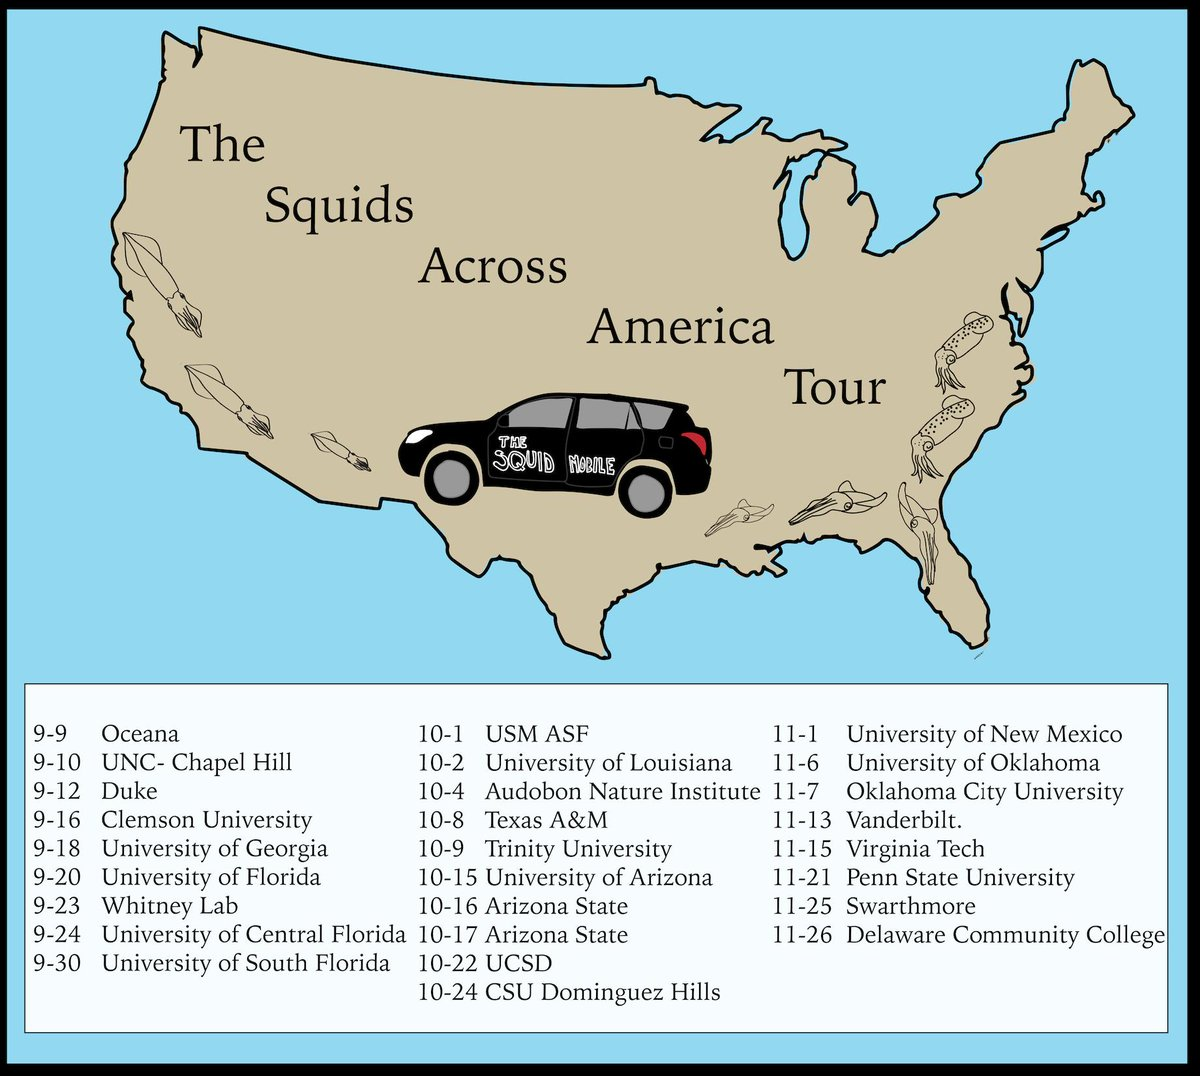 On Saturday I embark on my cross-country #SquidsAcrossAmerica Tour. Here's the lineup!